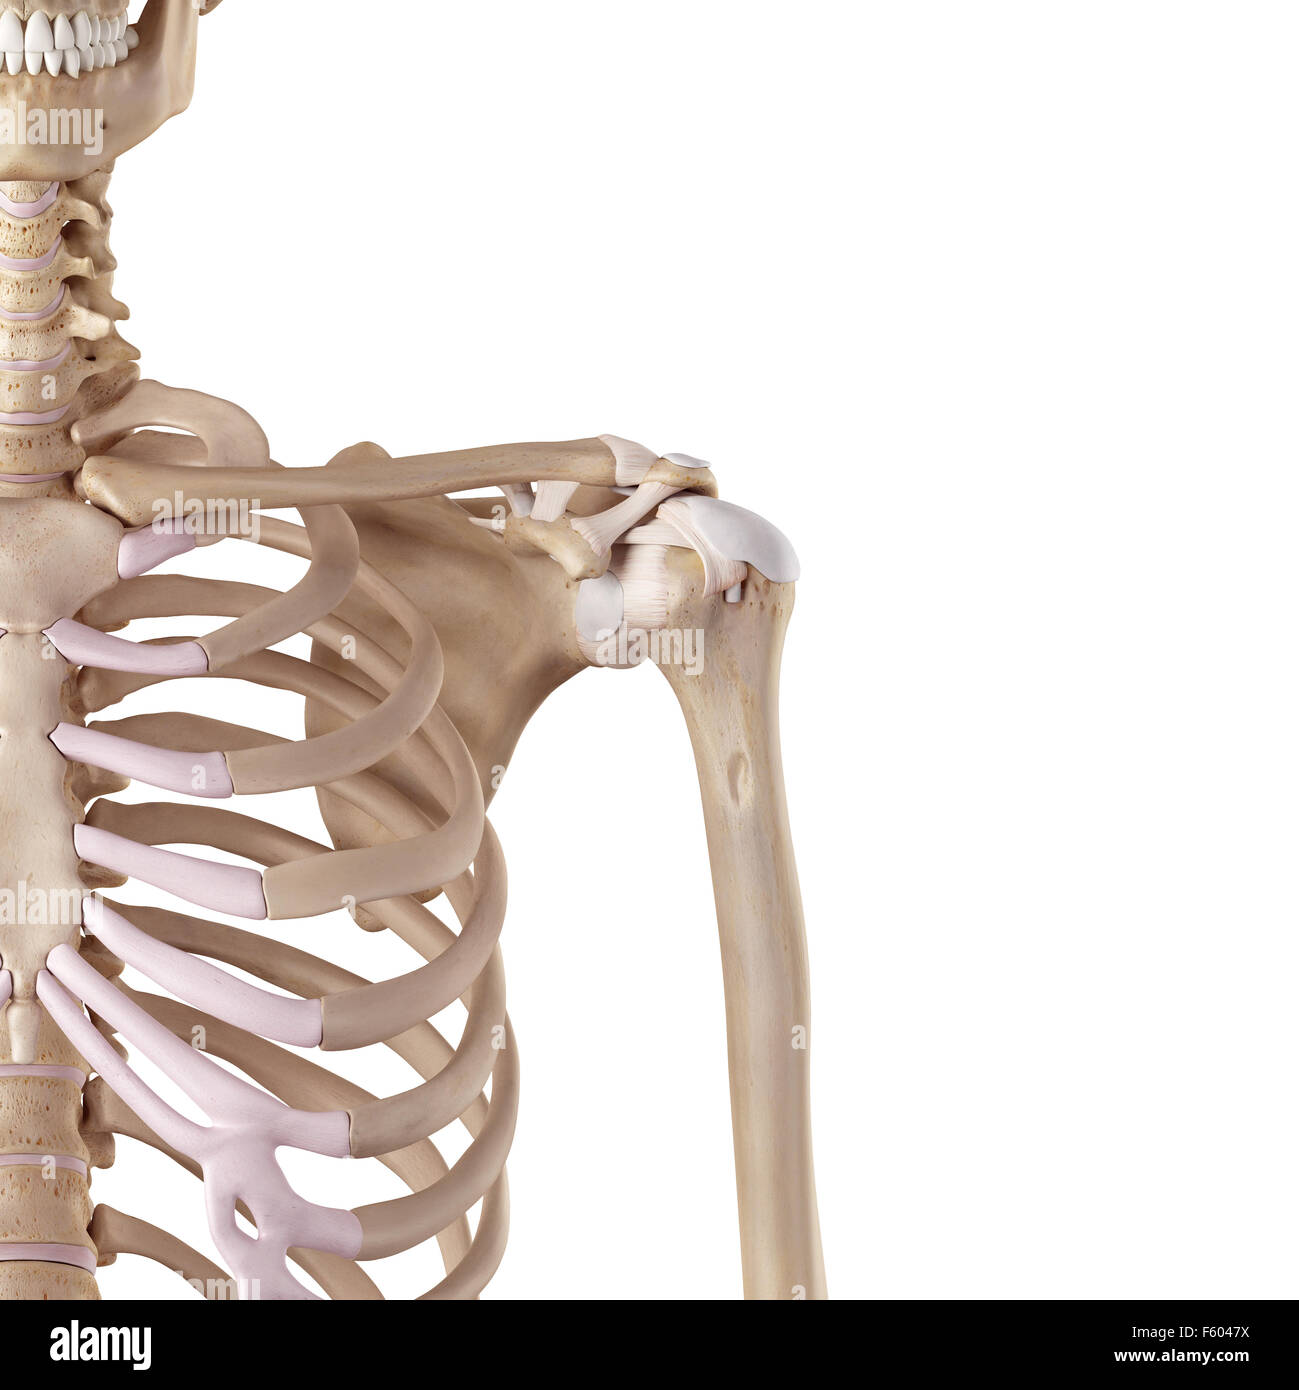 Medical Accurate Illustration Of The Shoulder Ligaments Stock Photo